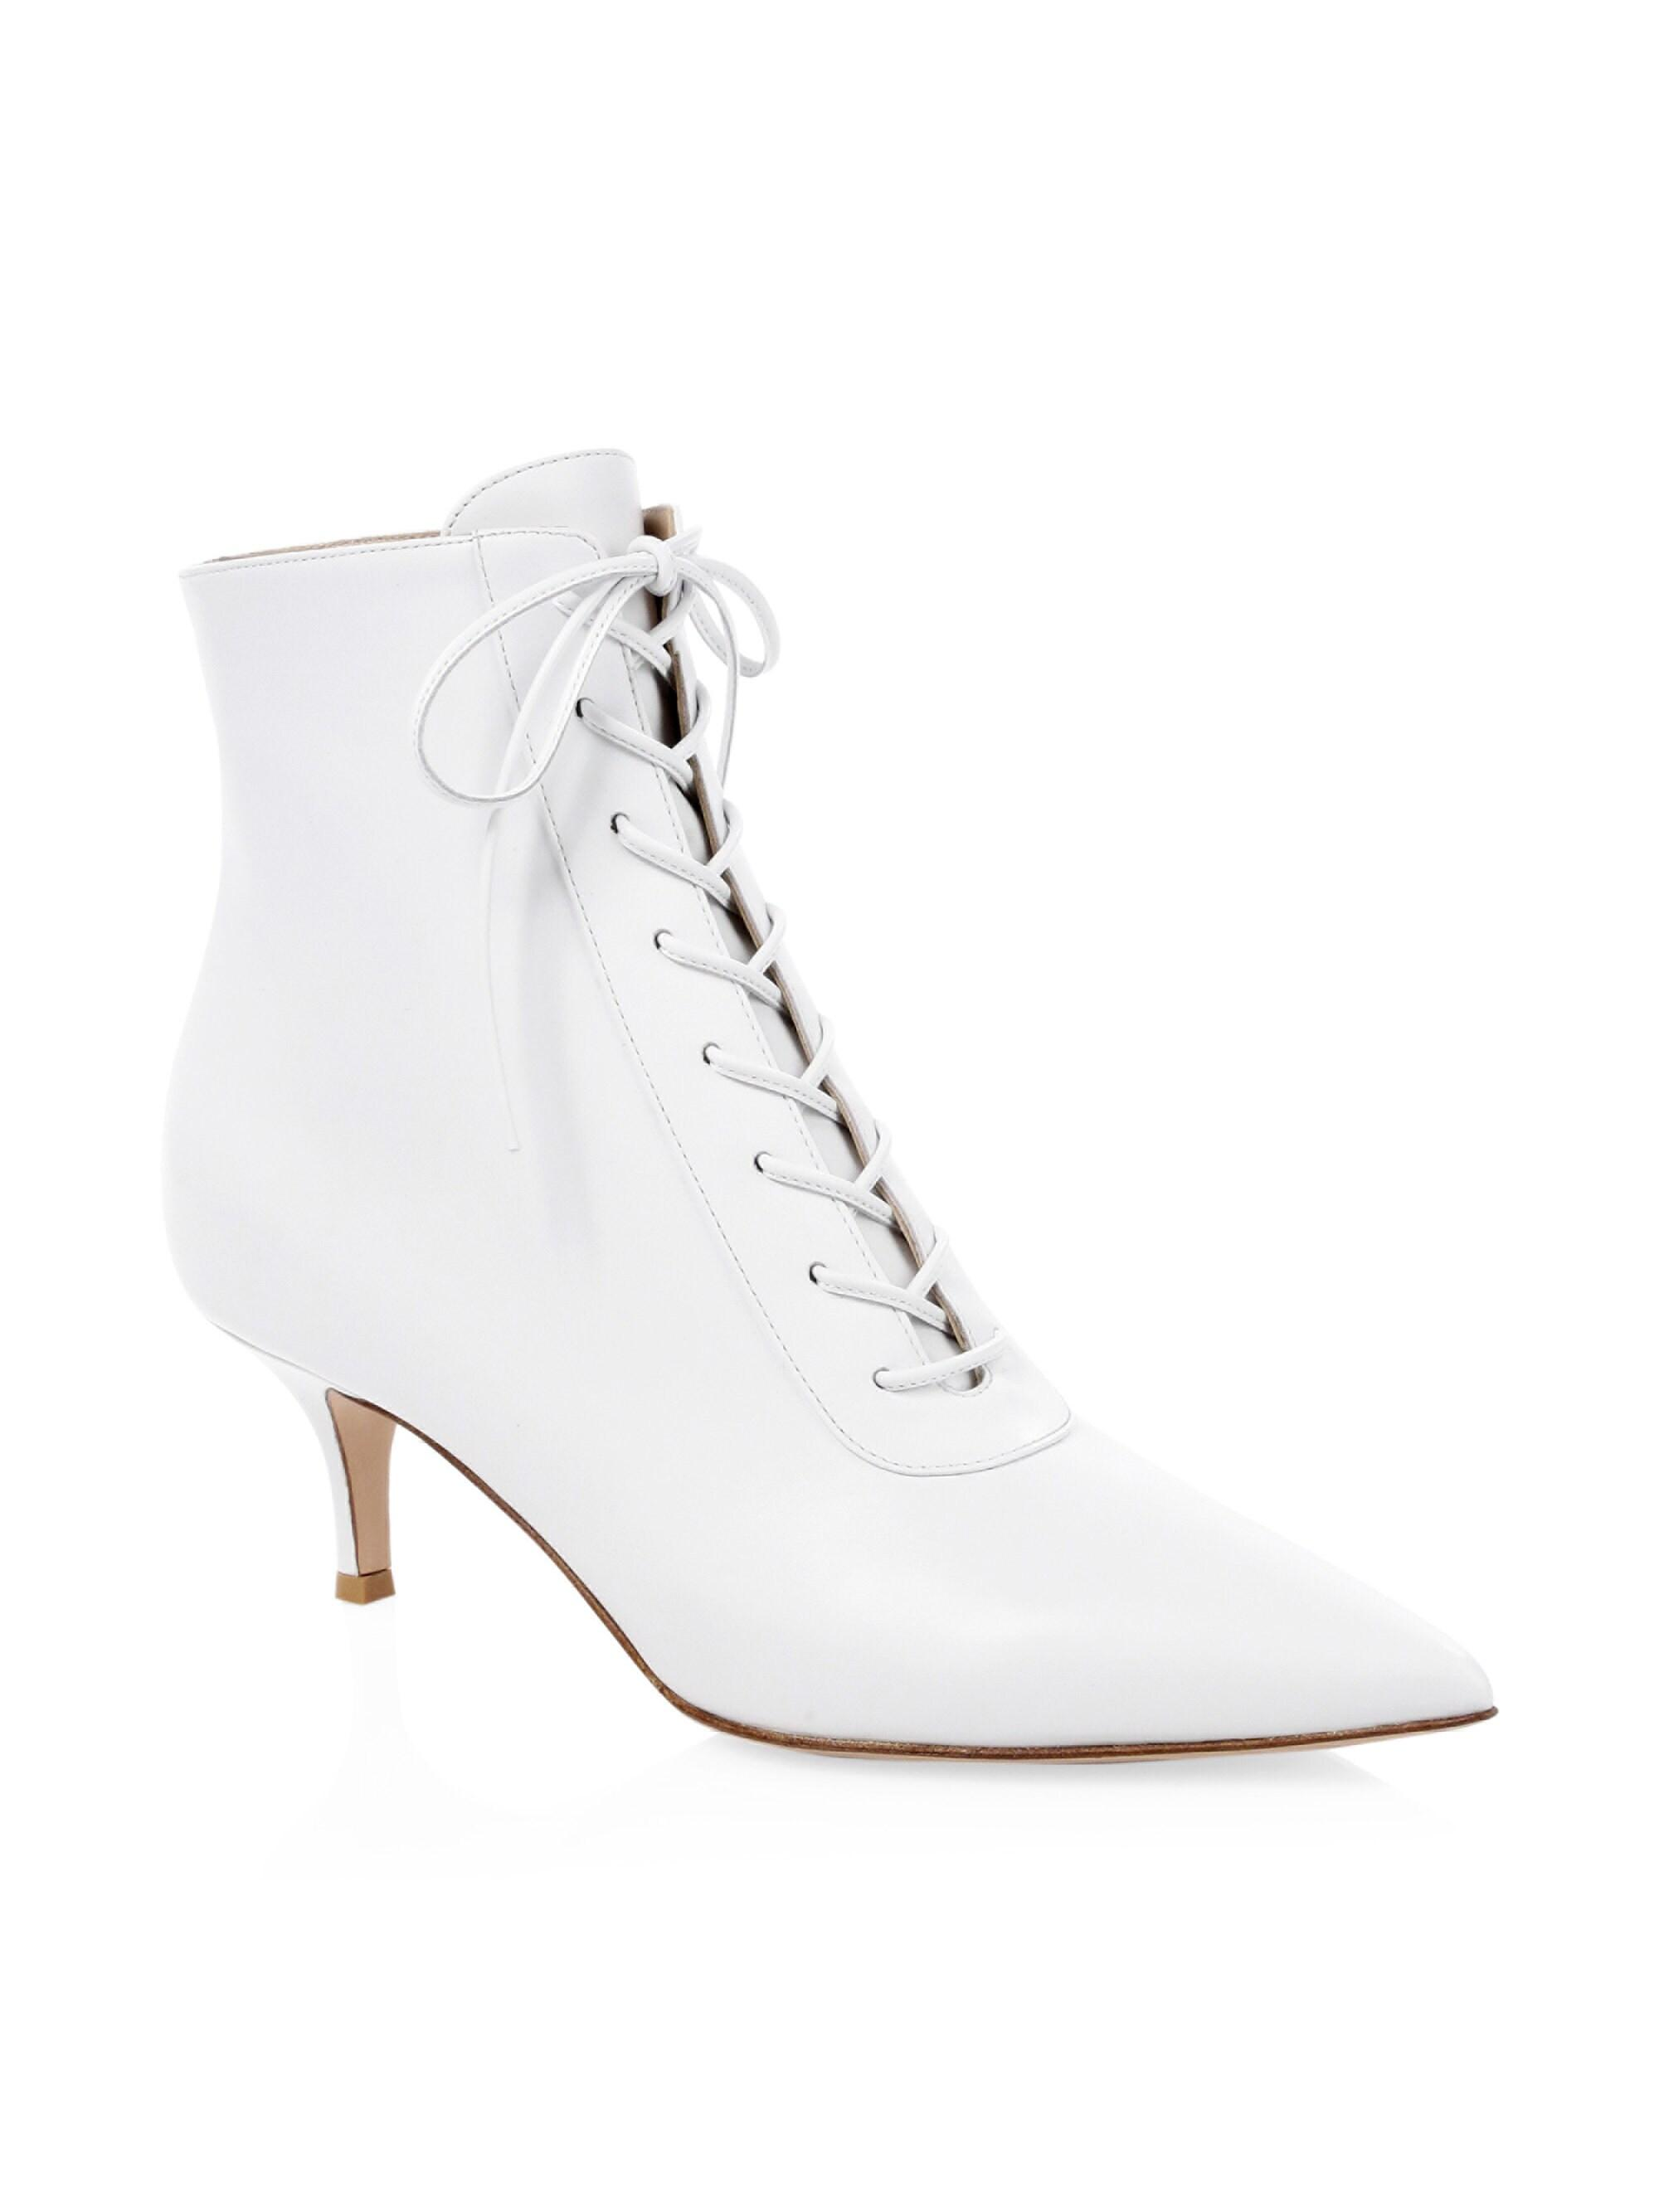 57525ce2fd Gianvito Rossi Leather Lace-up Kitten Heel Booties in White - Lyst